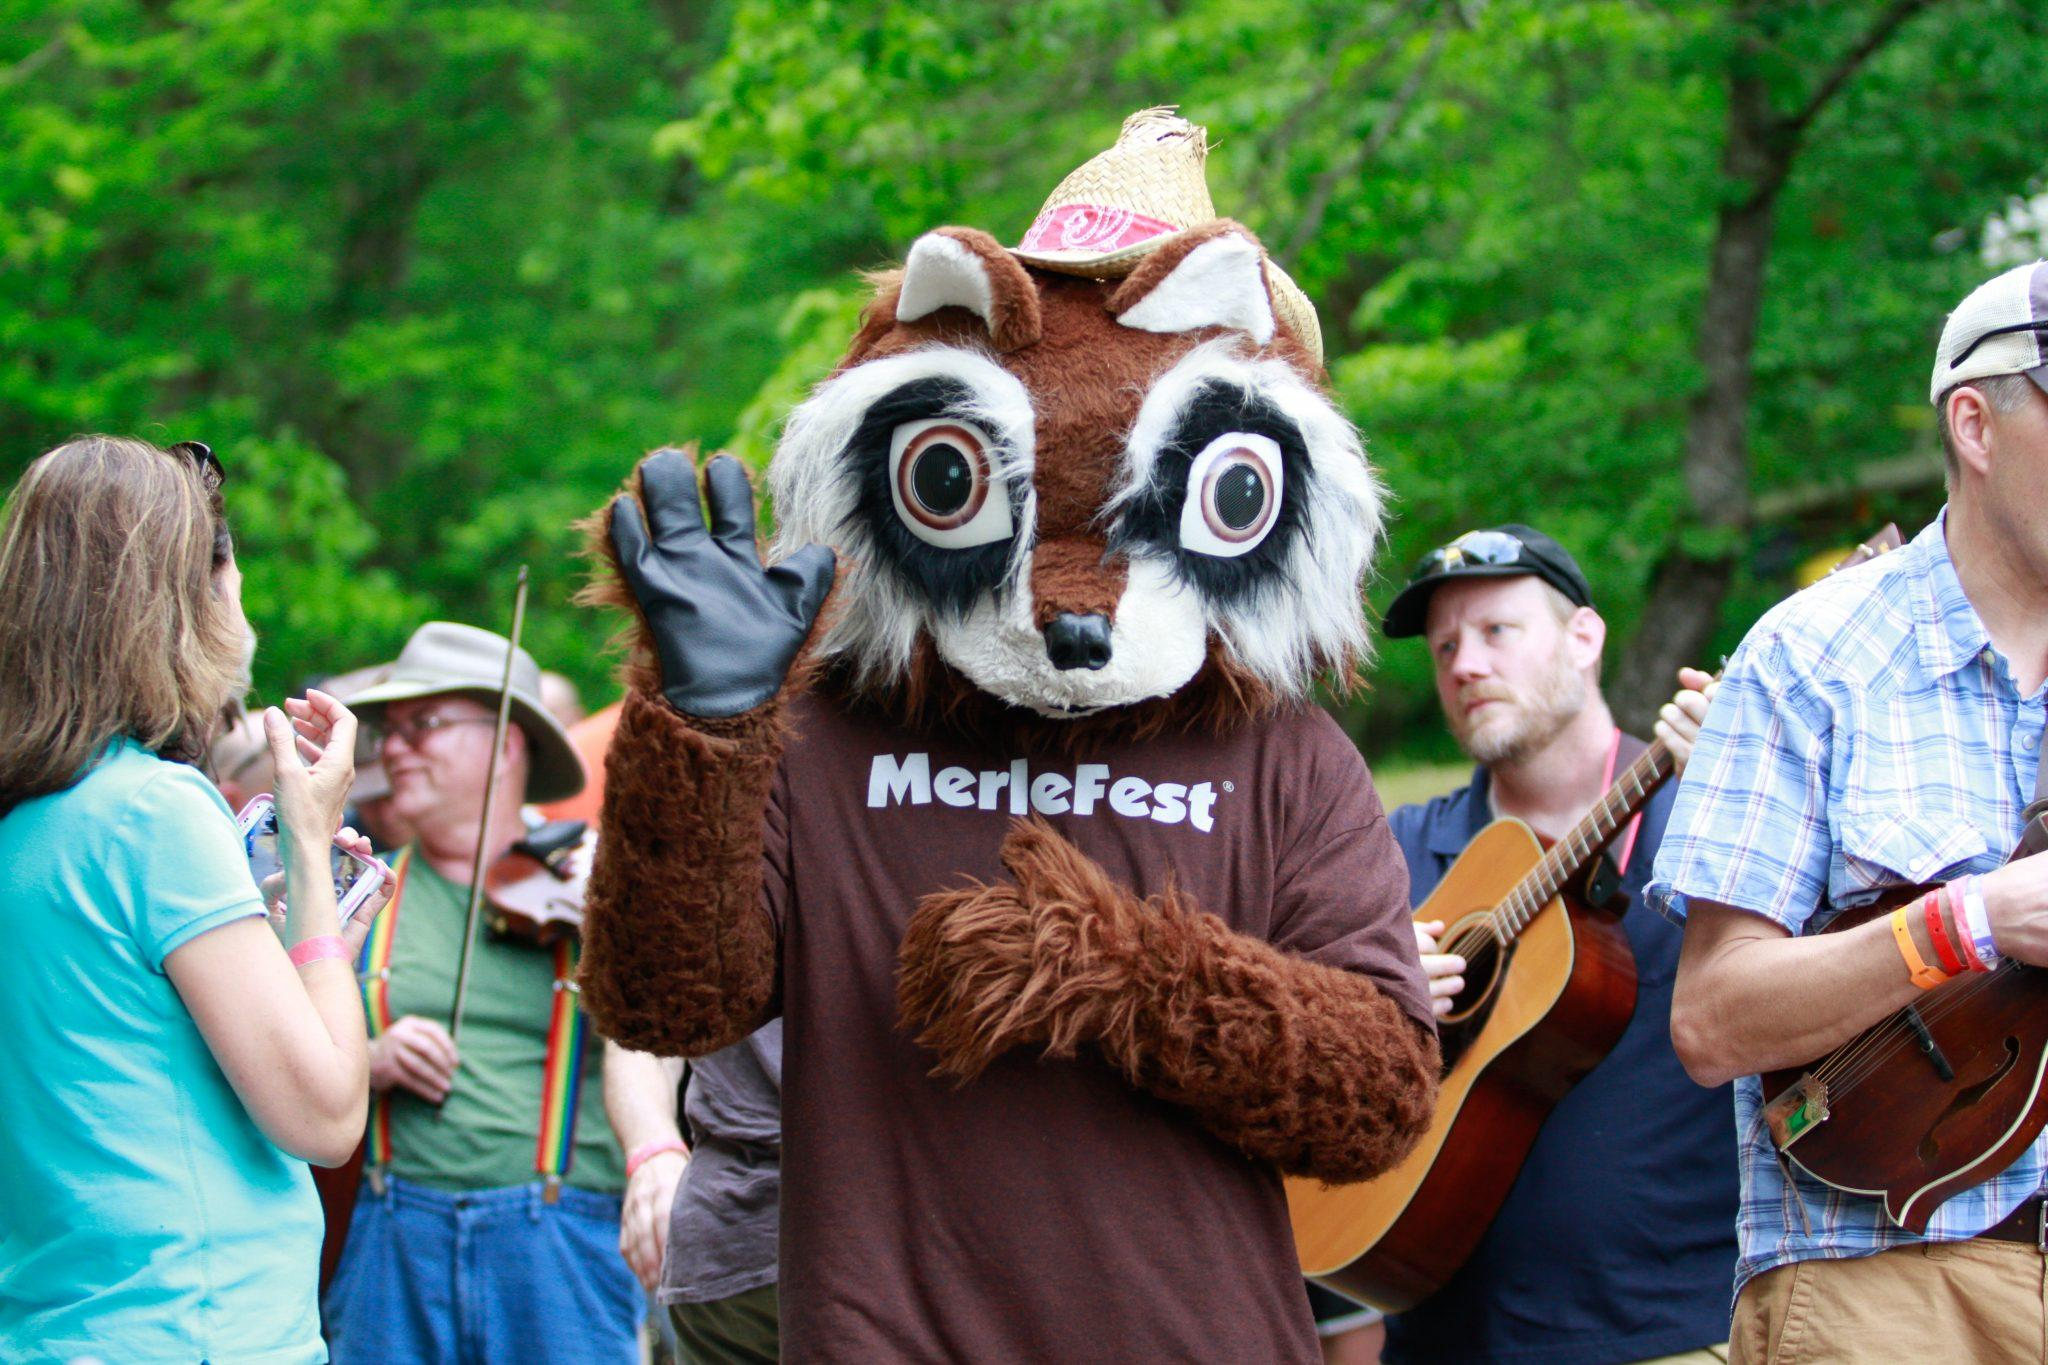 MerleFest%27s+mascot%2C+Flattop+the+raccoon%2C+at+MerleFest+2016.+Photo+by+Jeff+Clements.